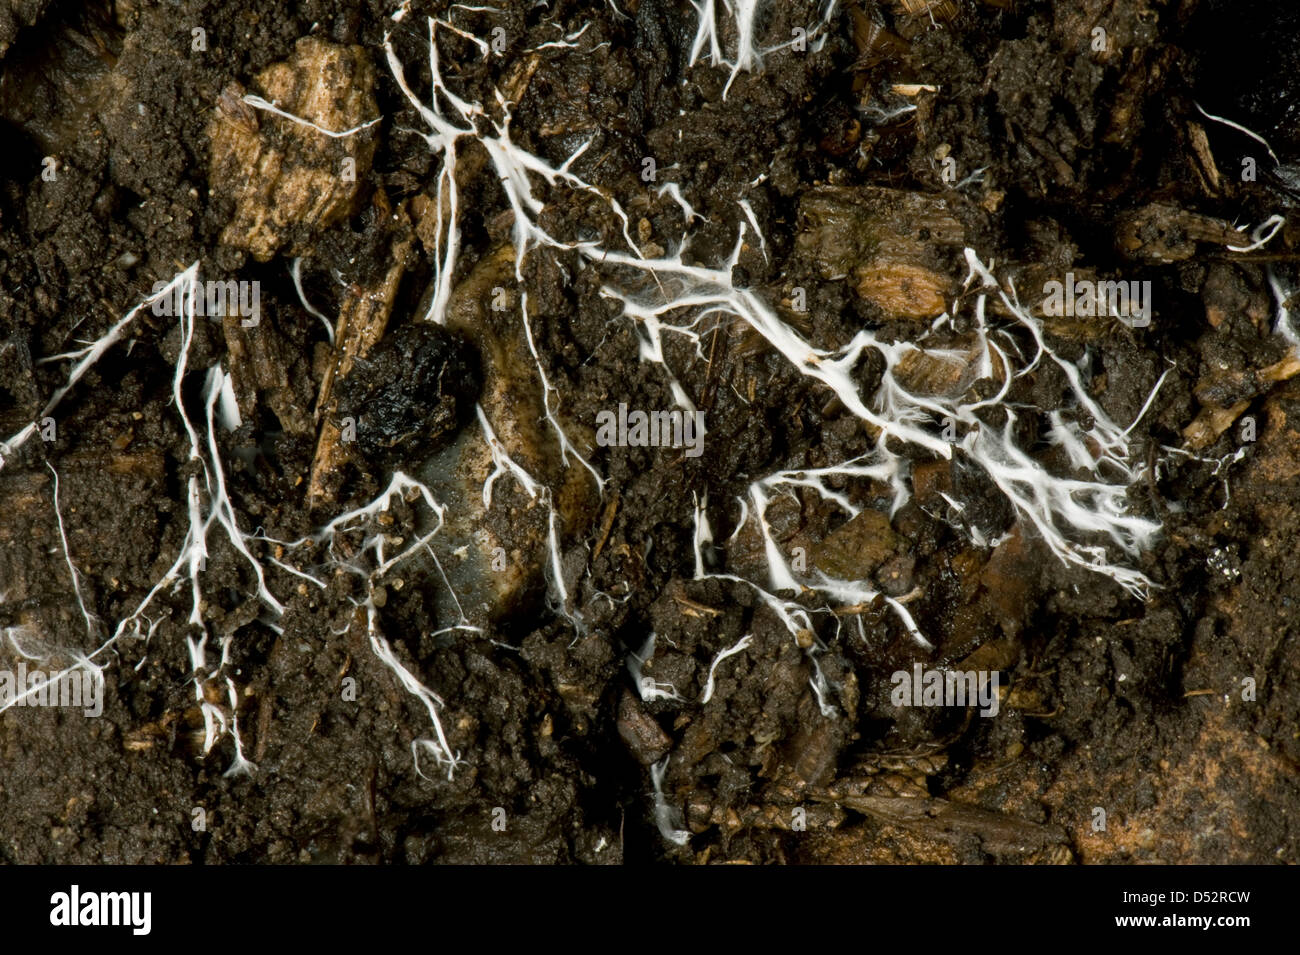 Mycelium threads are what How to grow a mycelium at home